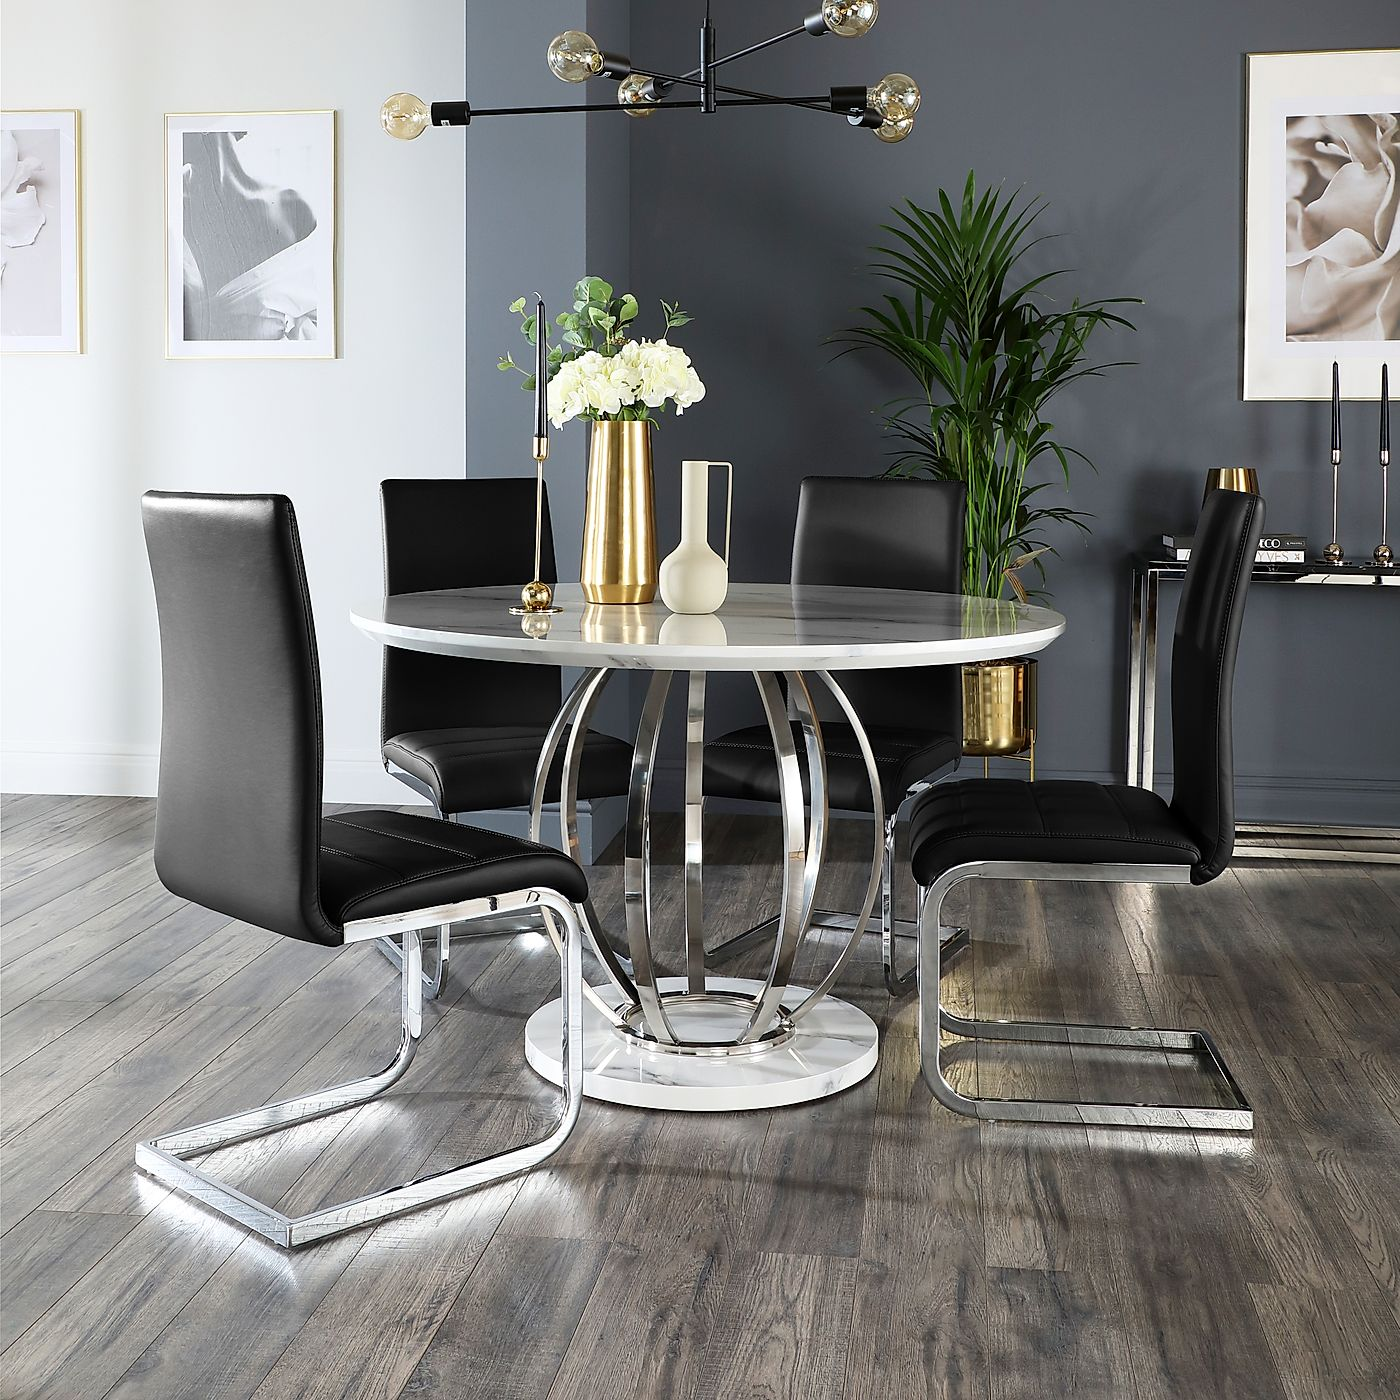 Admirable Savoy Round White Marble And Chrome Dining Table With 4 Perth Black Leather Chairs Uwap Interior Chair Design Uwaporg